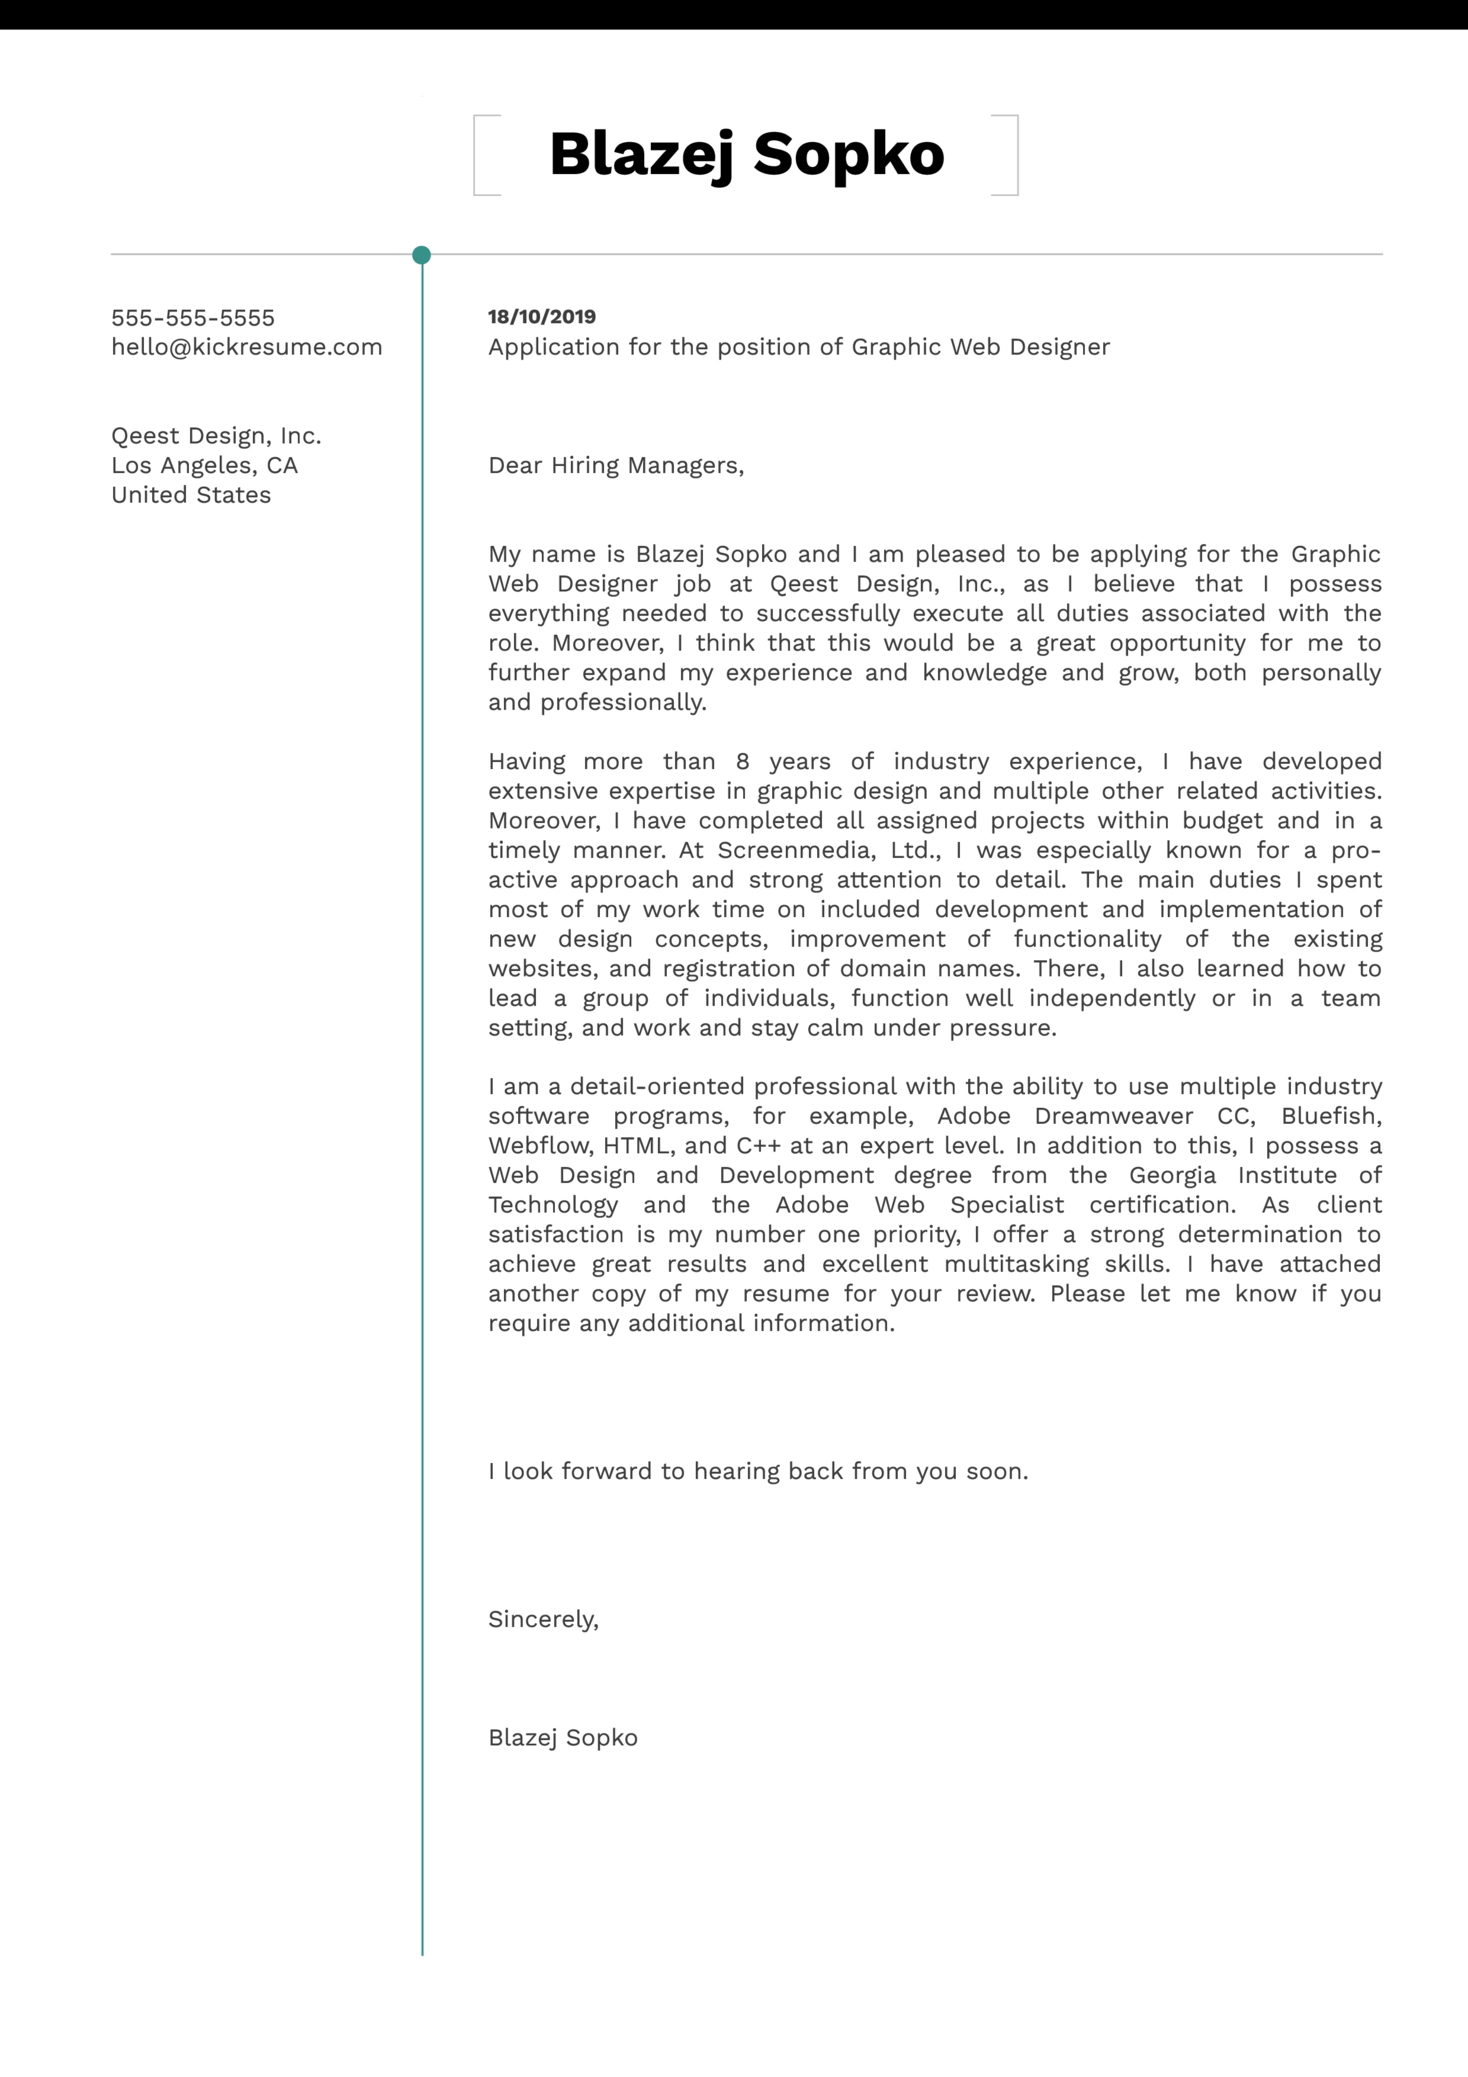 Cover Letter Examples by Real People: Graphic Web Designer ...